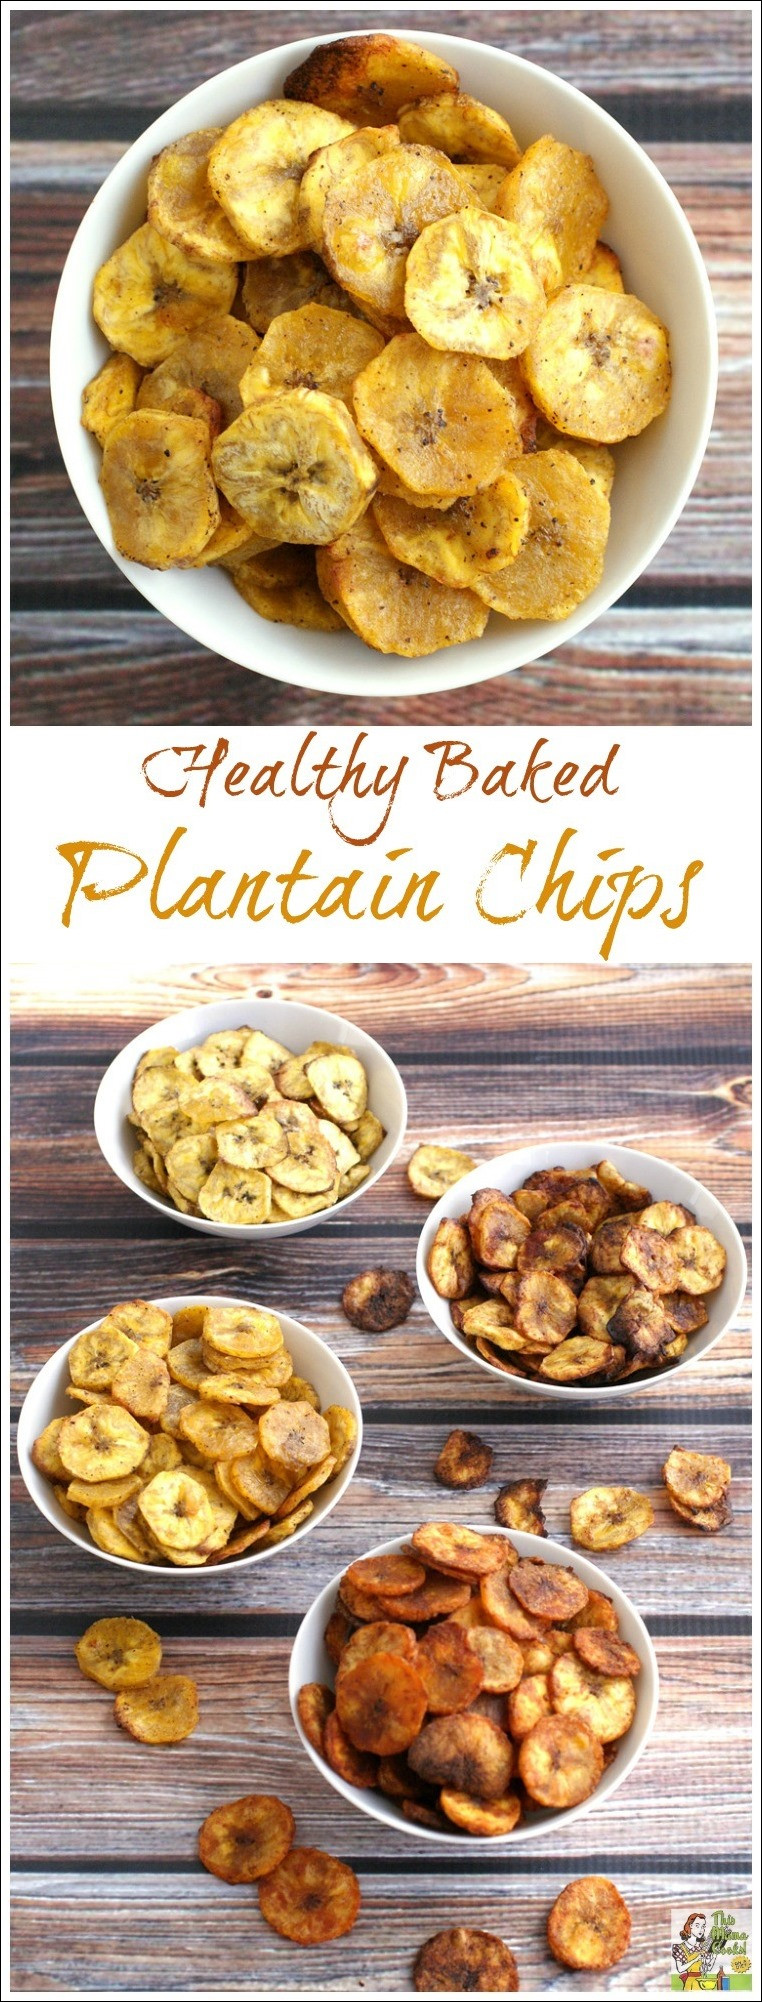 Healthy Snacks Recipes  Healthy Baked Plantain Chips Four Ways